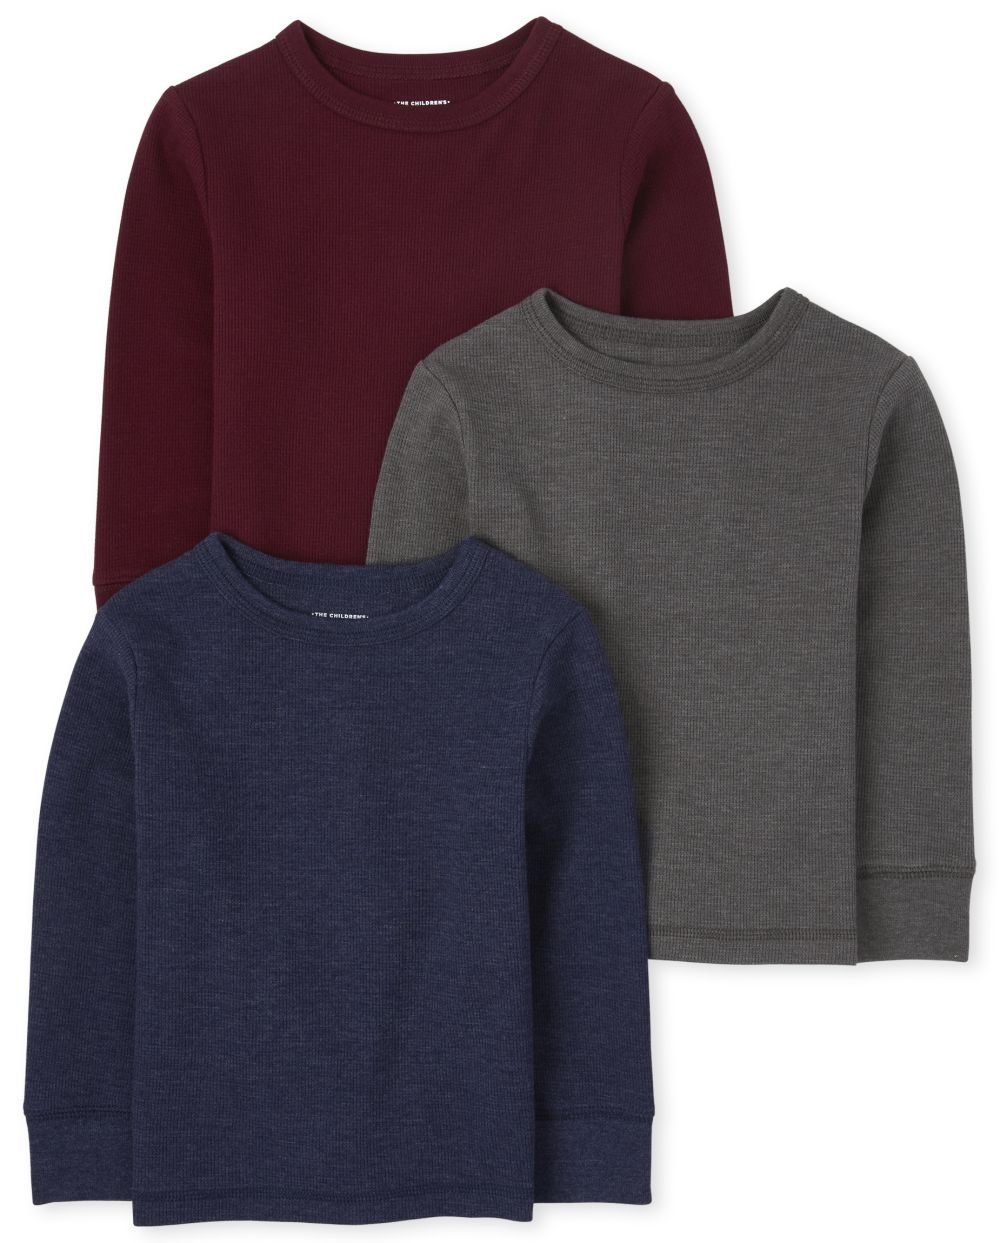 Baby And Toddler Boys Thermal Top 3-Pack